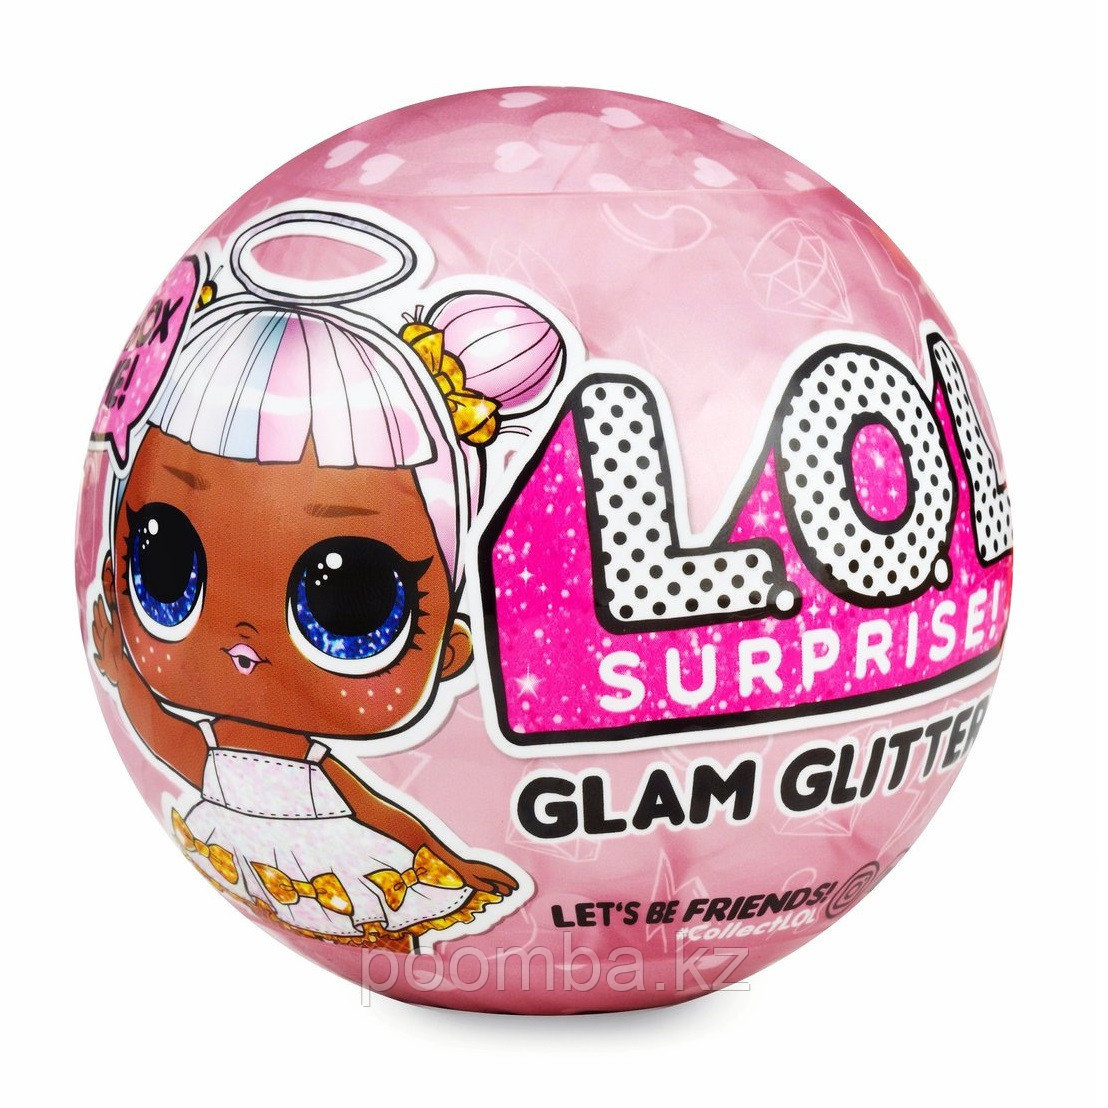 Кукла LOL (ЛОЛ сюрприз) Глэм Глиттер (LOL Surprise Glam Glitter series 4)